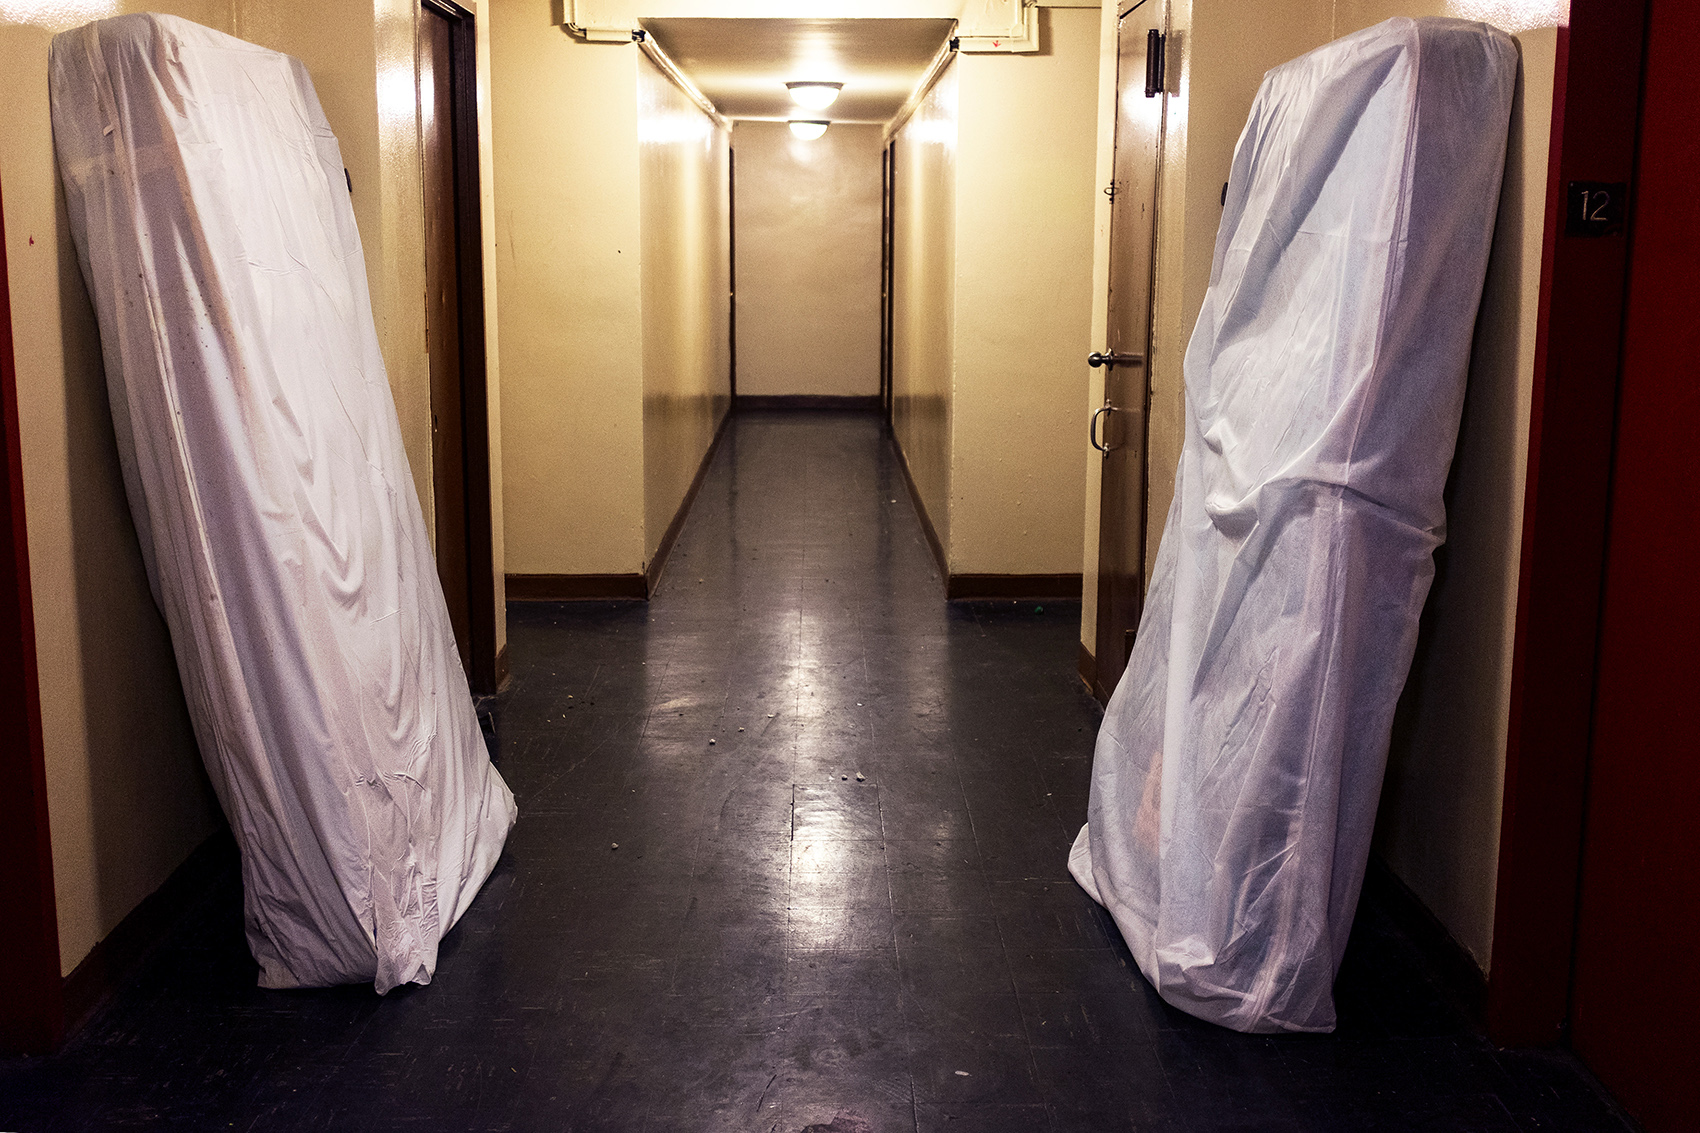 Mattresses containing bedbugs stand in the hallway of the 12 floor at the Ebbets Field Apartment complex. Robin Talyor lived on the 12 floor until she was evicted in 2015. Ebbets Field Apartments opened in 1962 after the Brooklyn Dodgers moved to Los Angeles providing affordable housing for low income families.